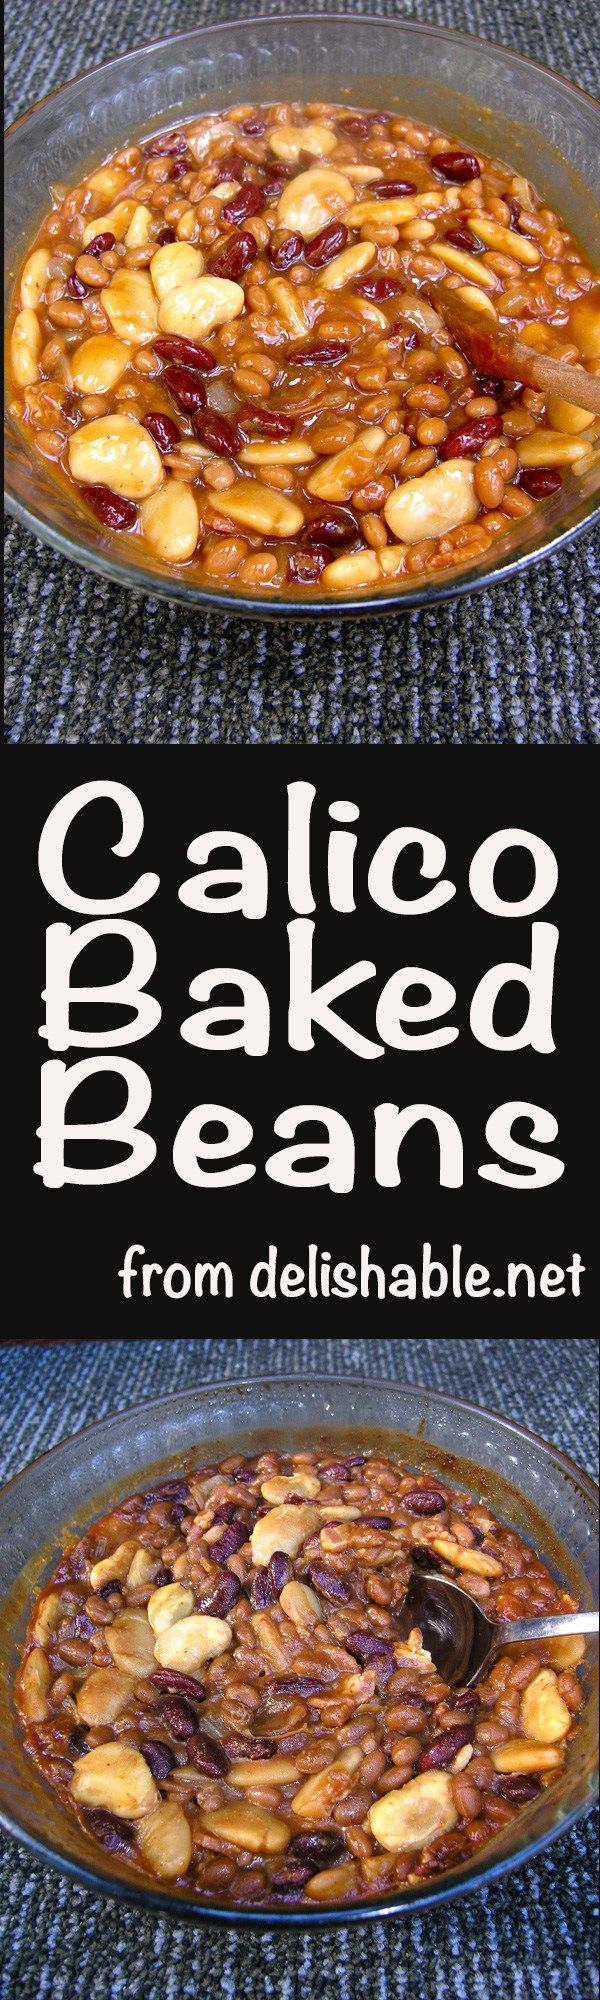 Calico Baked Beans - using canned beans makes this a quick, easy recipe. Absolutely delicious, a perfect side dish for a potlucks, picnics, or barbecues. | delishable.net